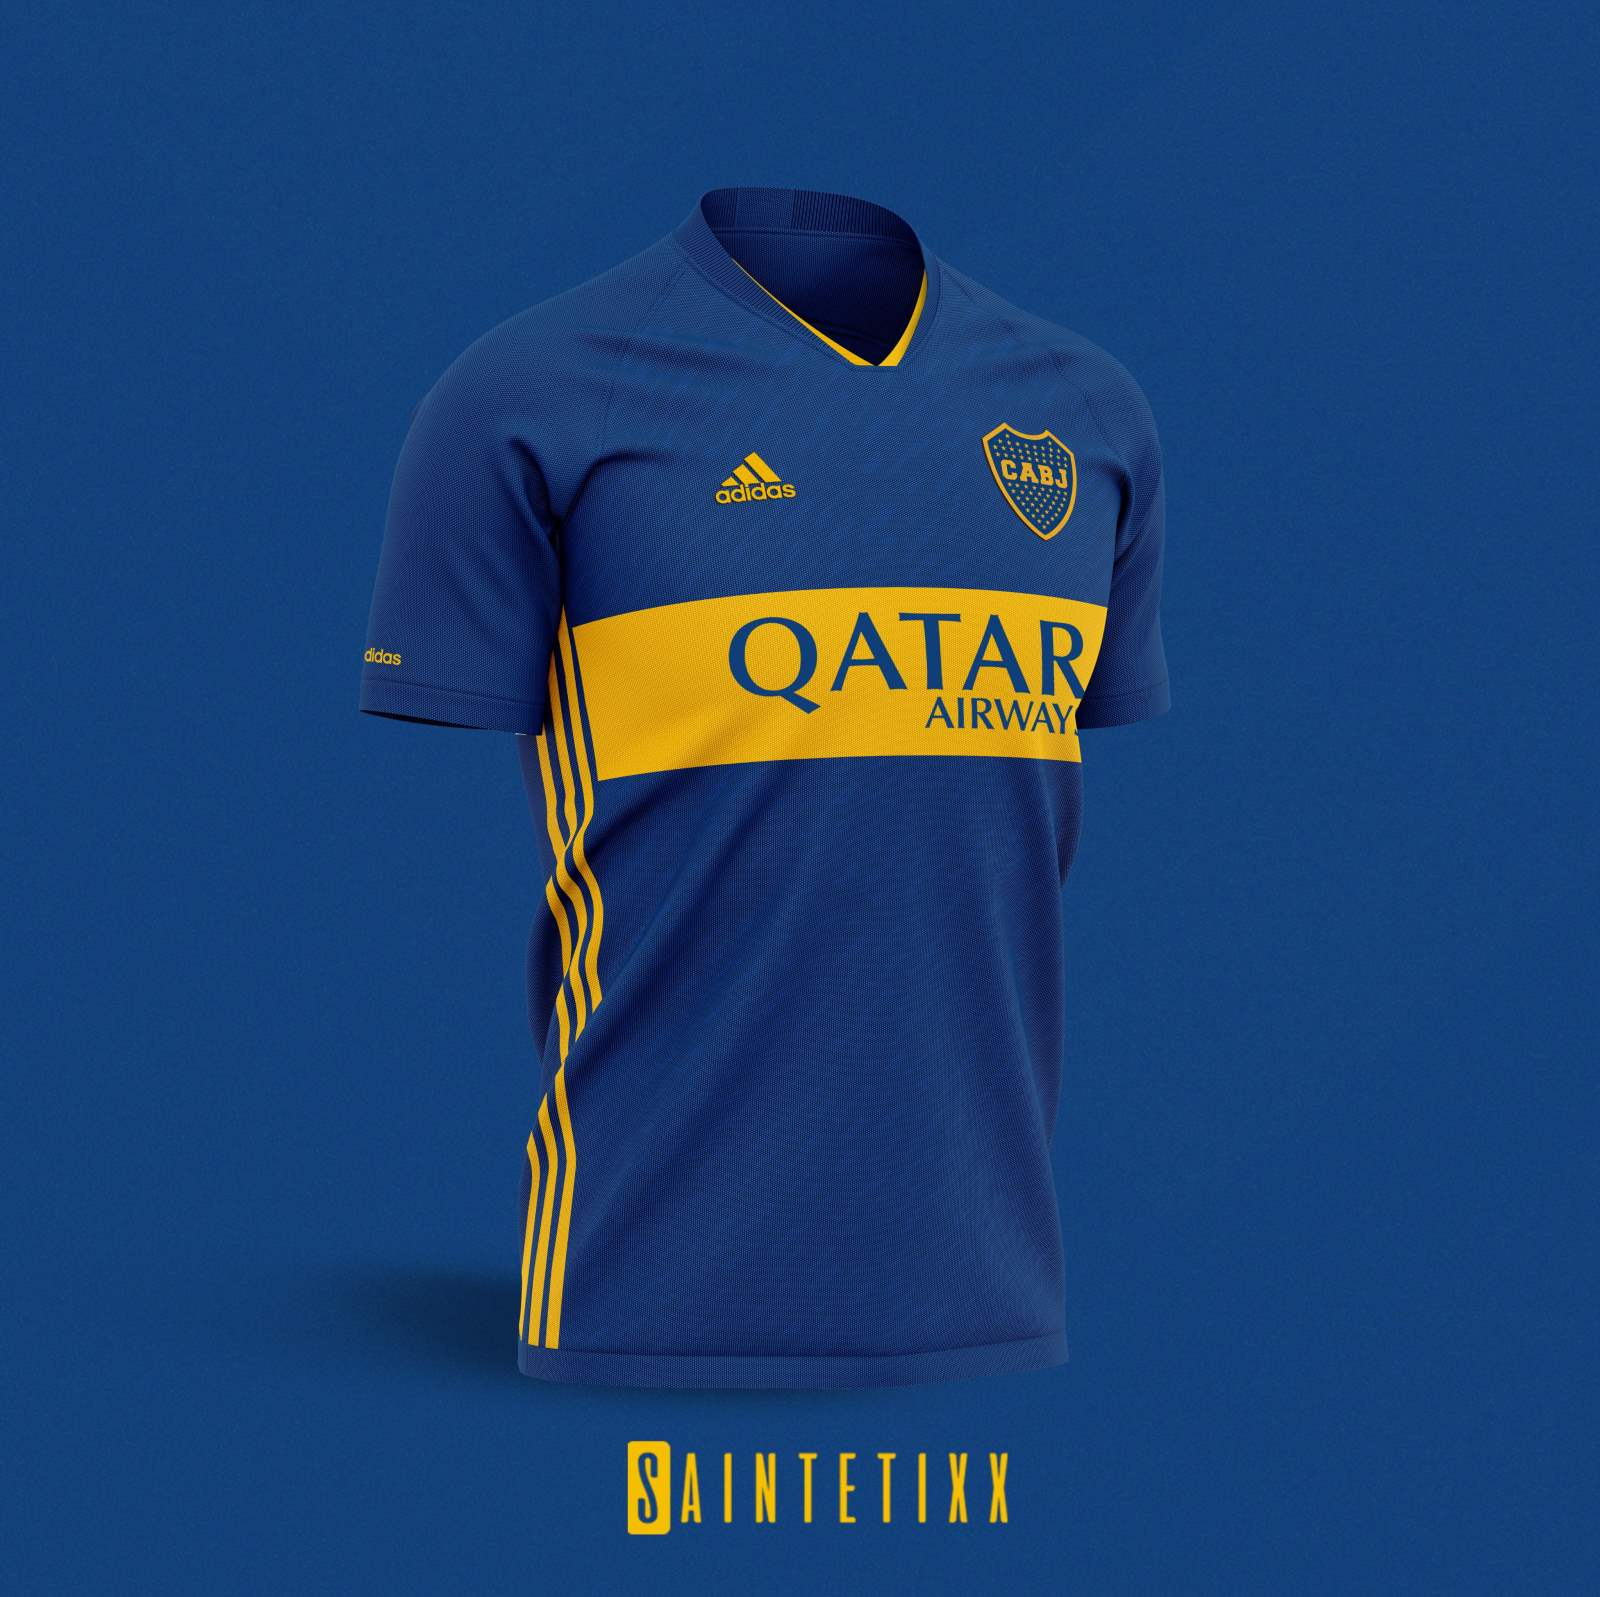 premium selection e0a32 0d5e0 No More Nike From 2020 - Adidas Boca Juniors Home, Away ...